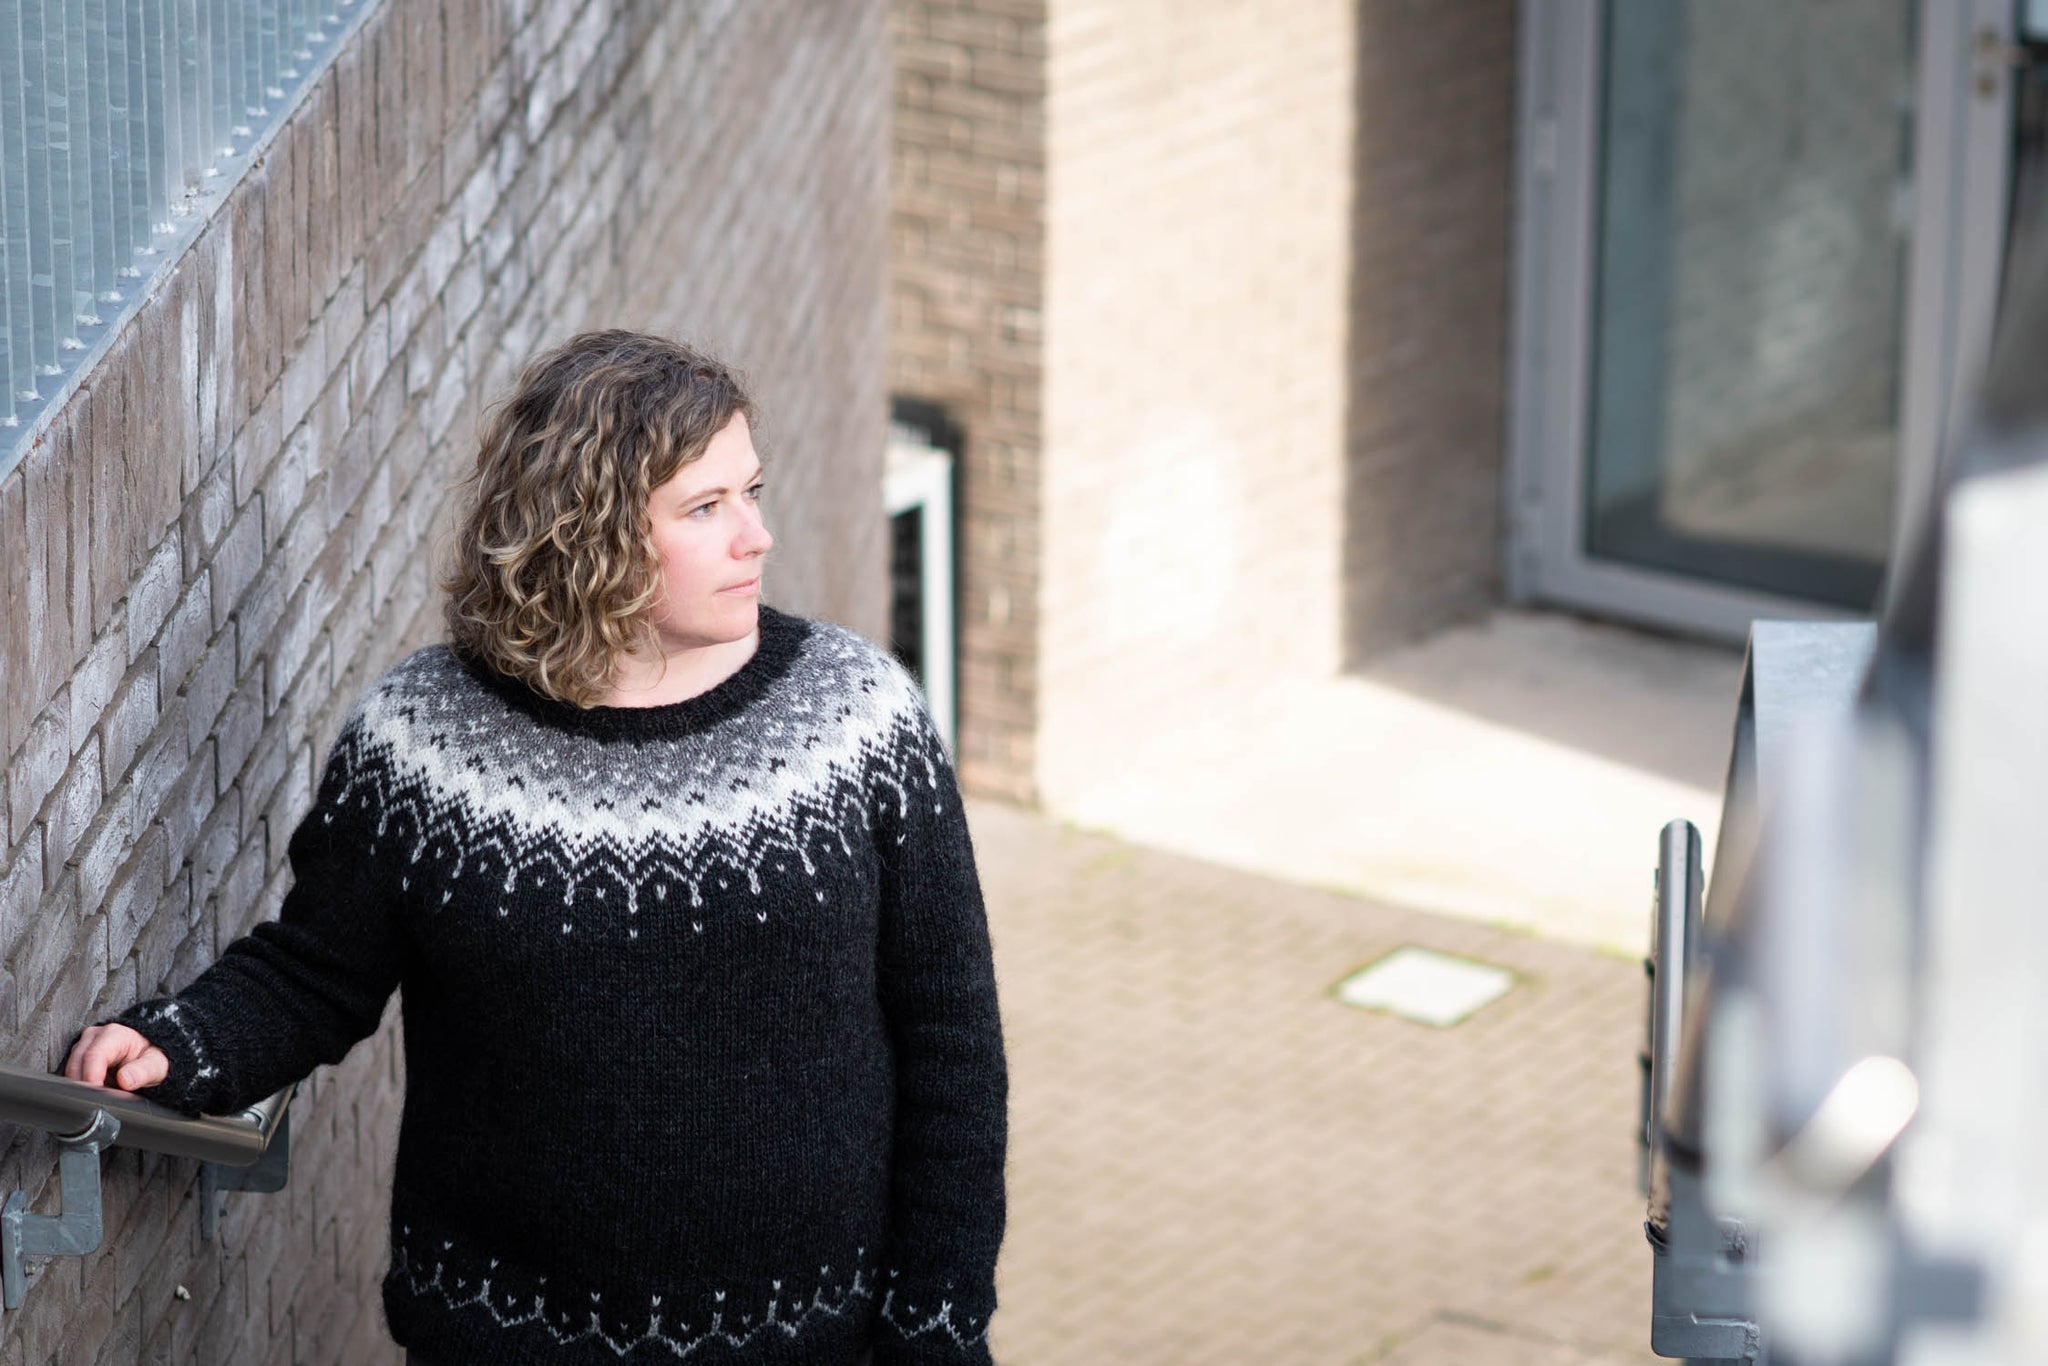 A white woman with curly hair stands in a stairway, looking to the side. She wears a black sweater with colourwork yoke and holds onto the stair rail.